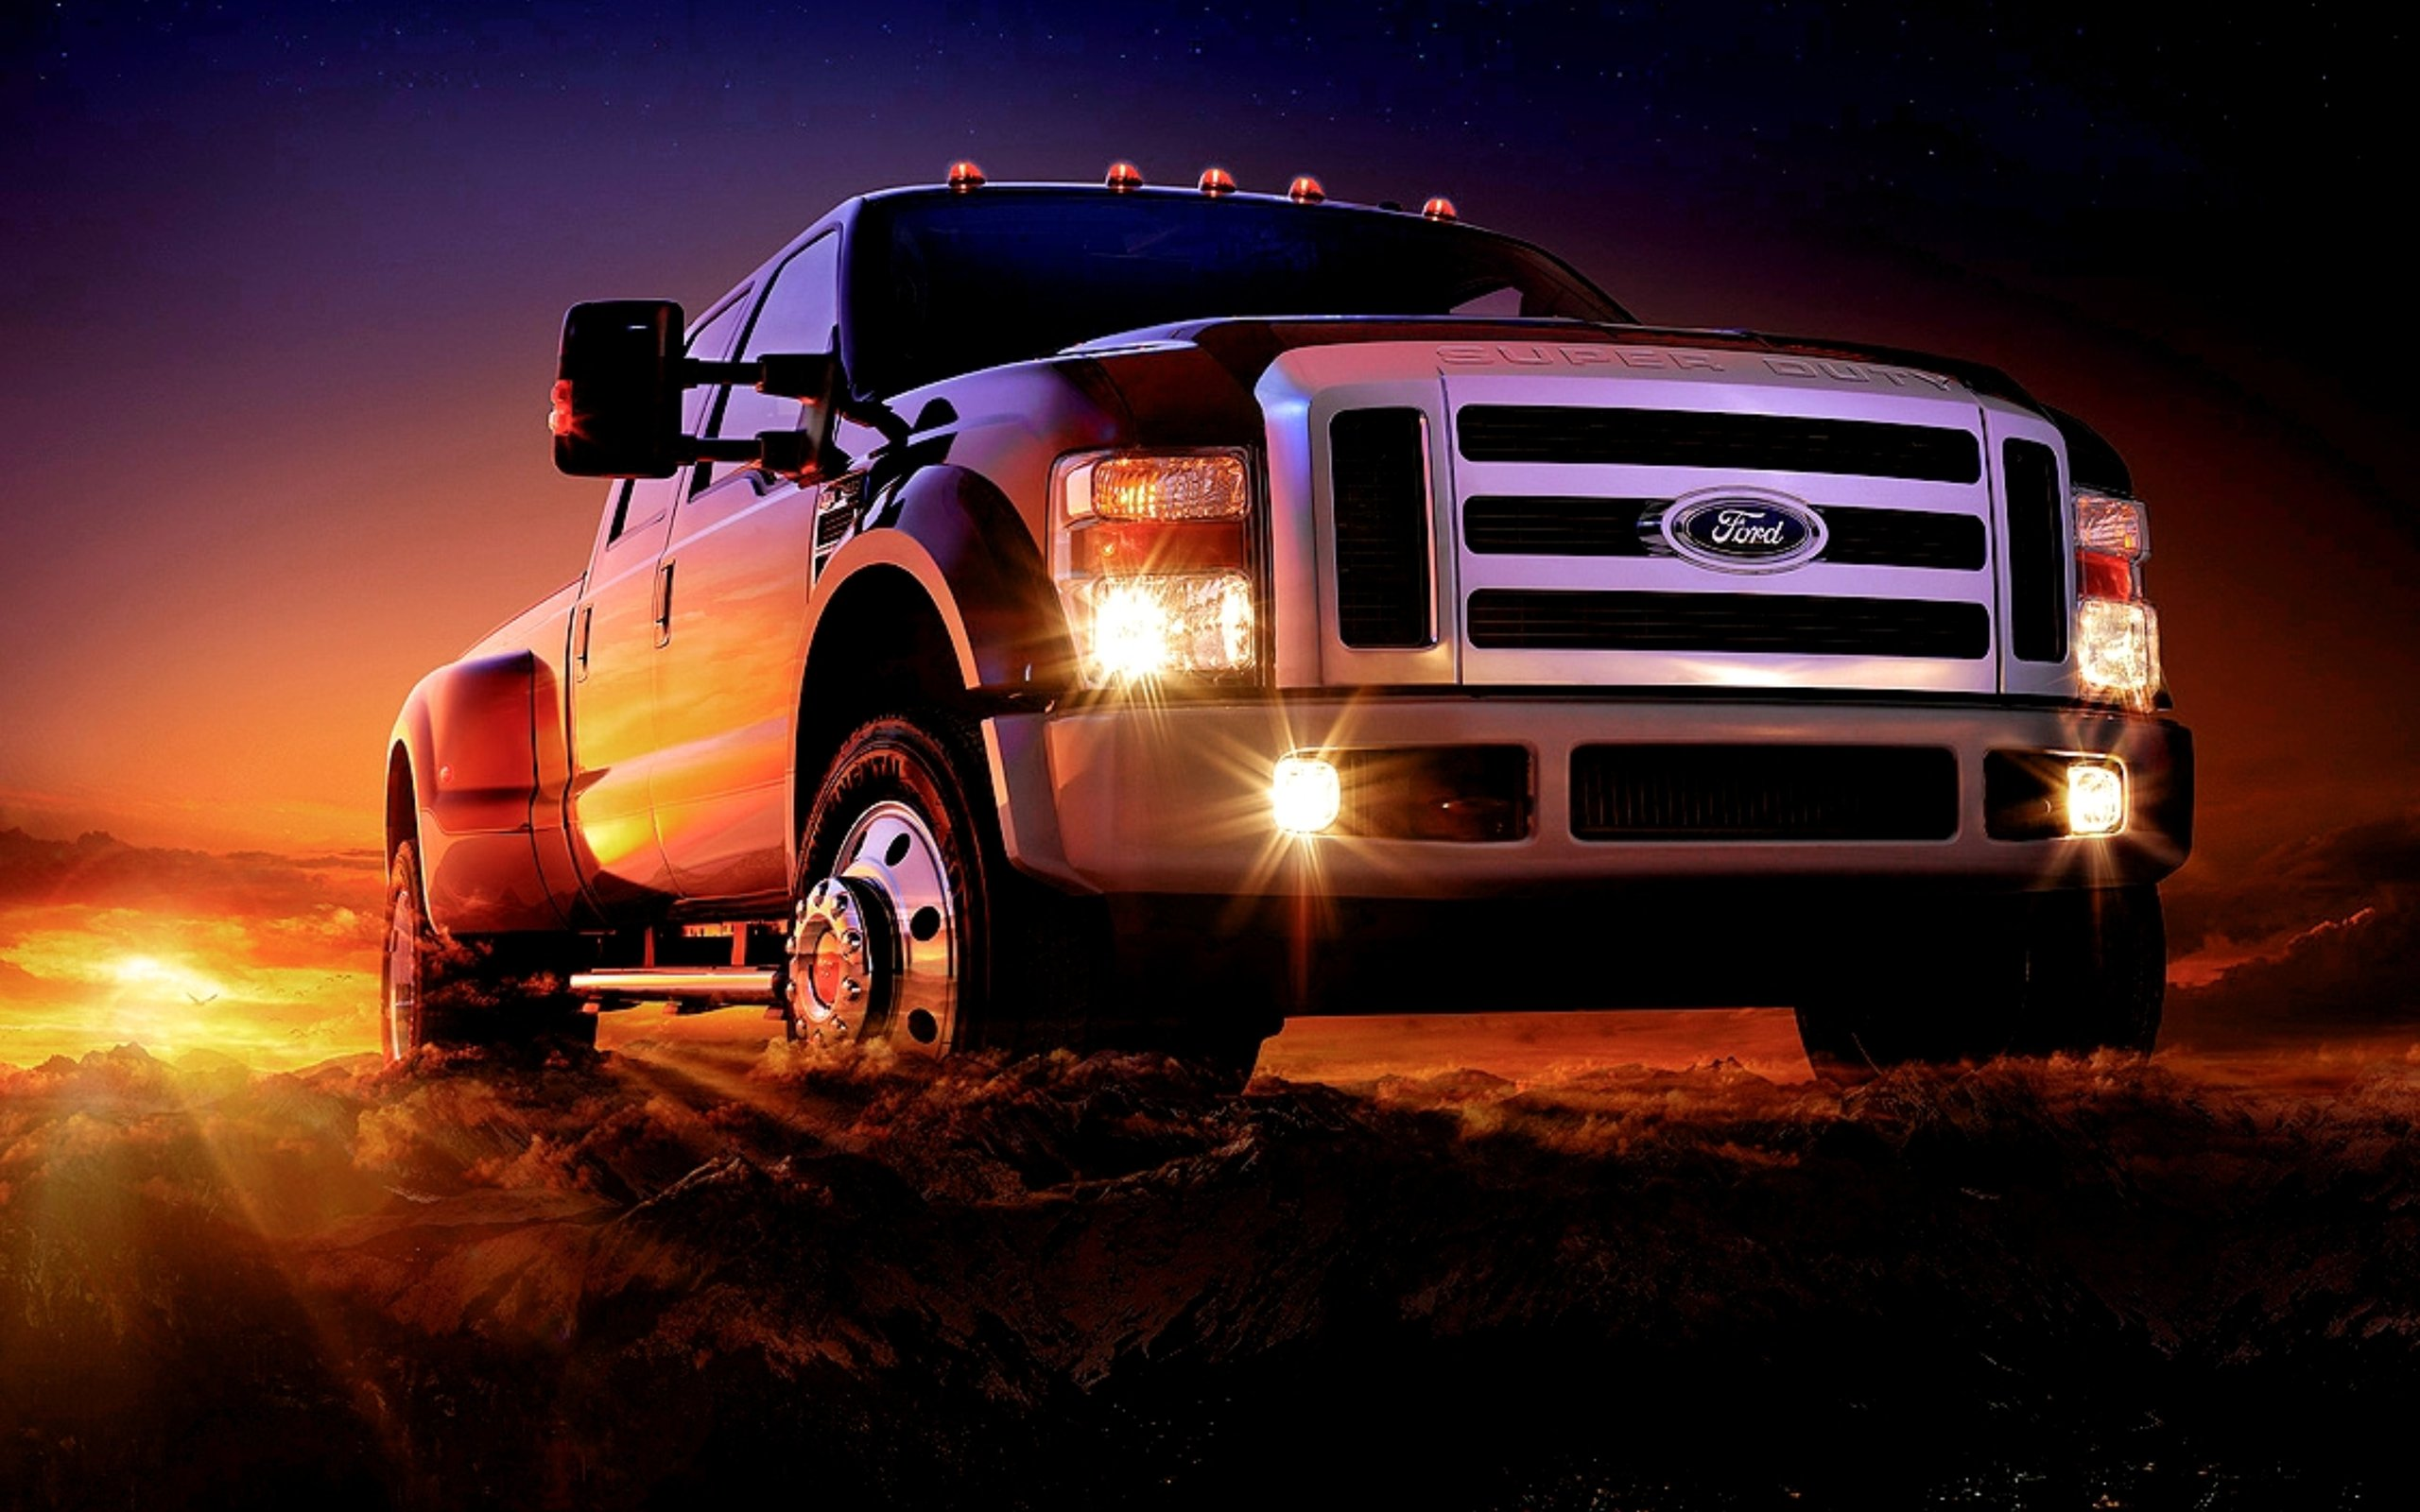 Ford Truck Wallpaper Ford Truck Wallpaper0 Ford Truck Wallpaper1 ...